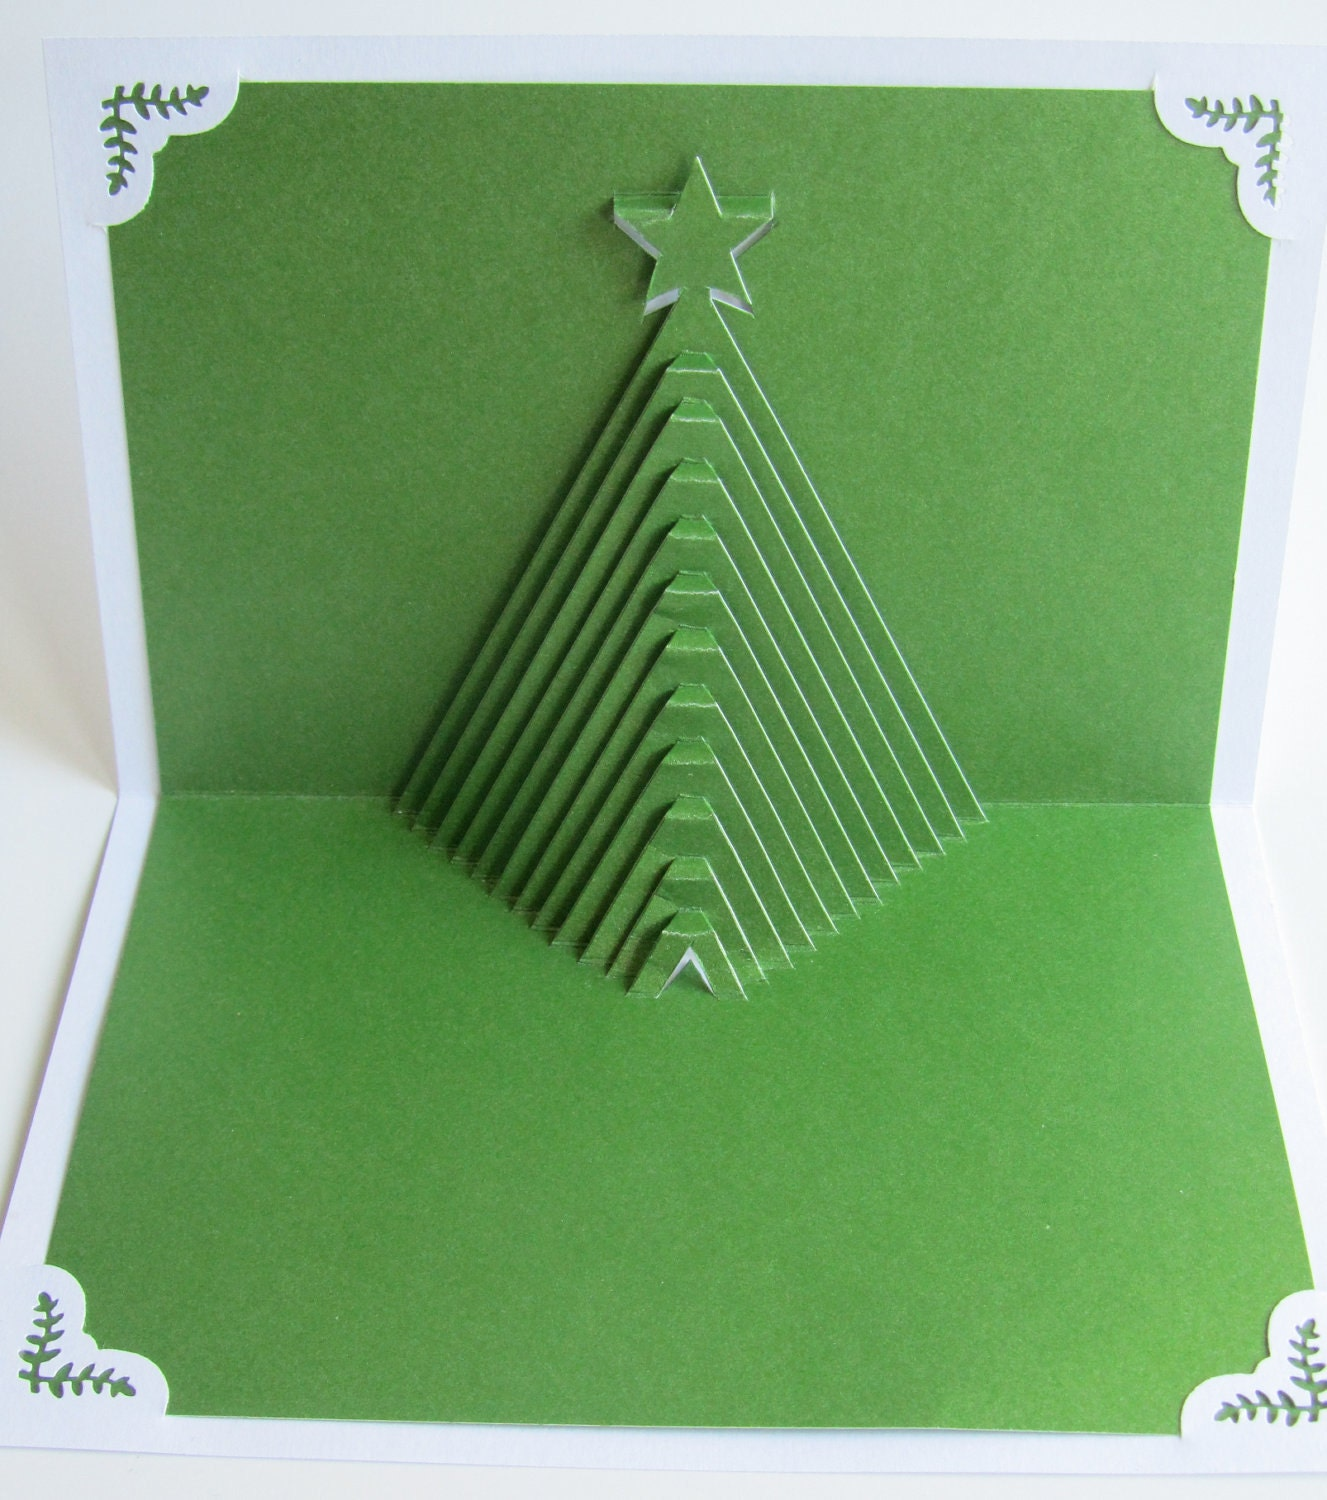 Christmas tree pop up home d cor 3d handmade cut by hand for 3d christmas cards to make at home